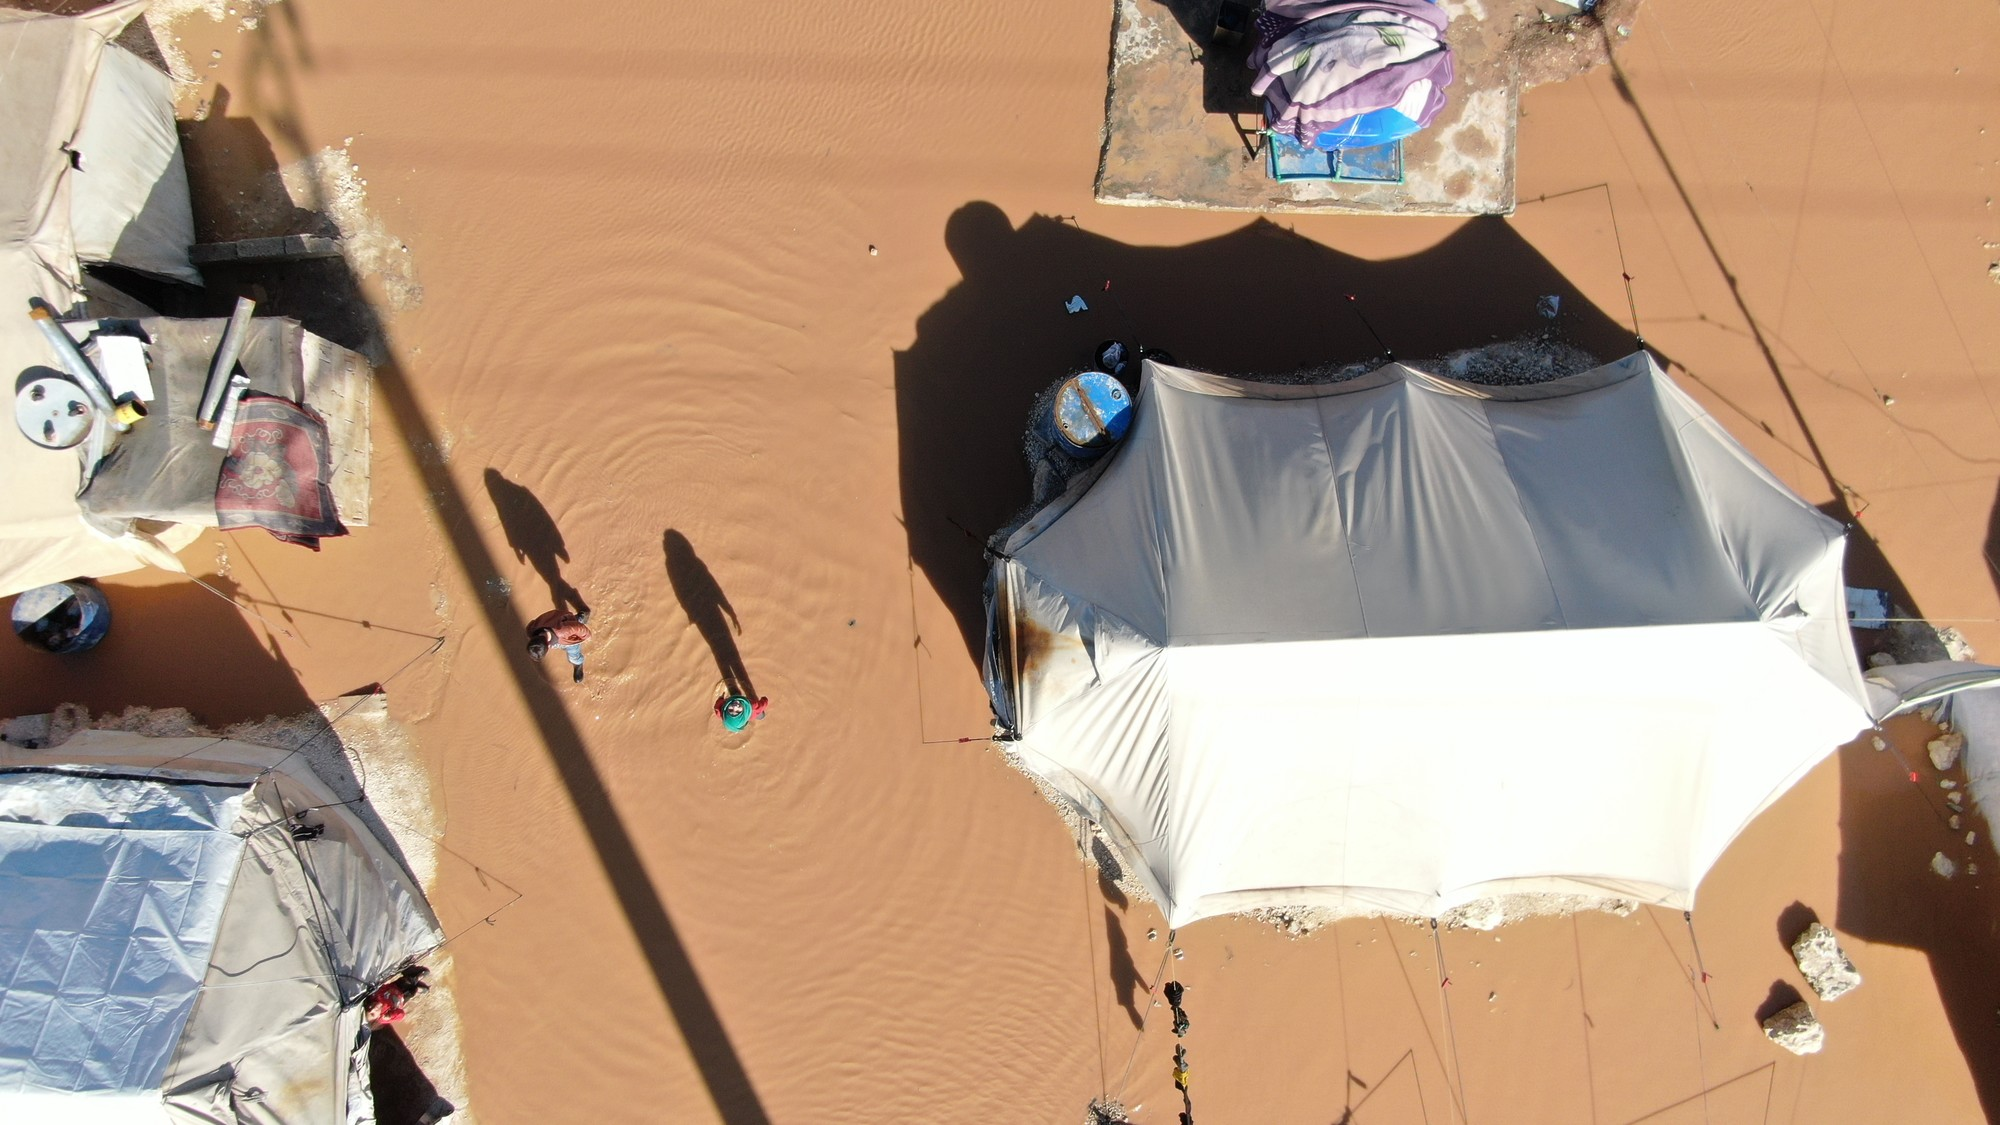 An overhead view of a flooded camp.